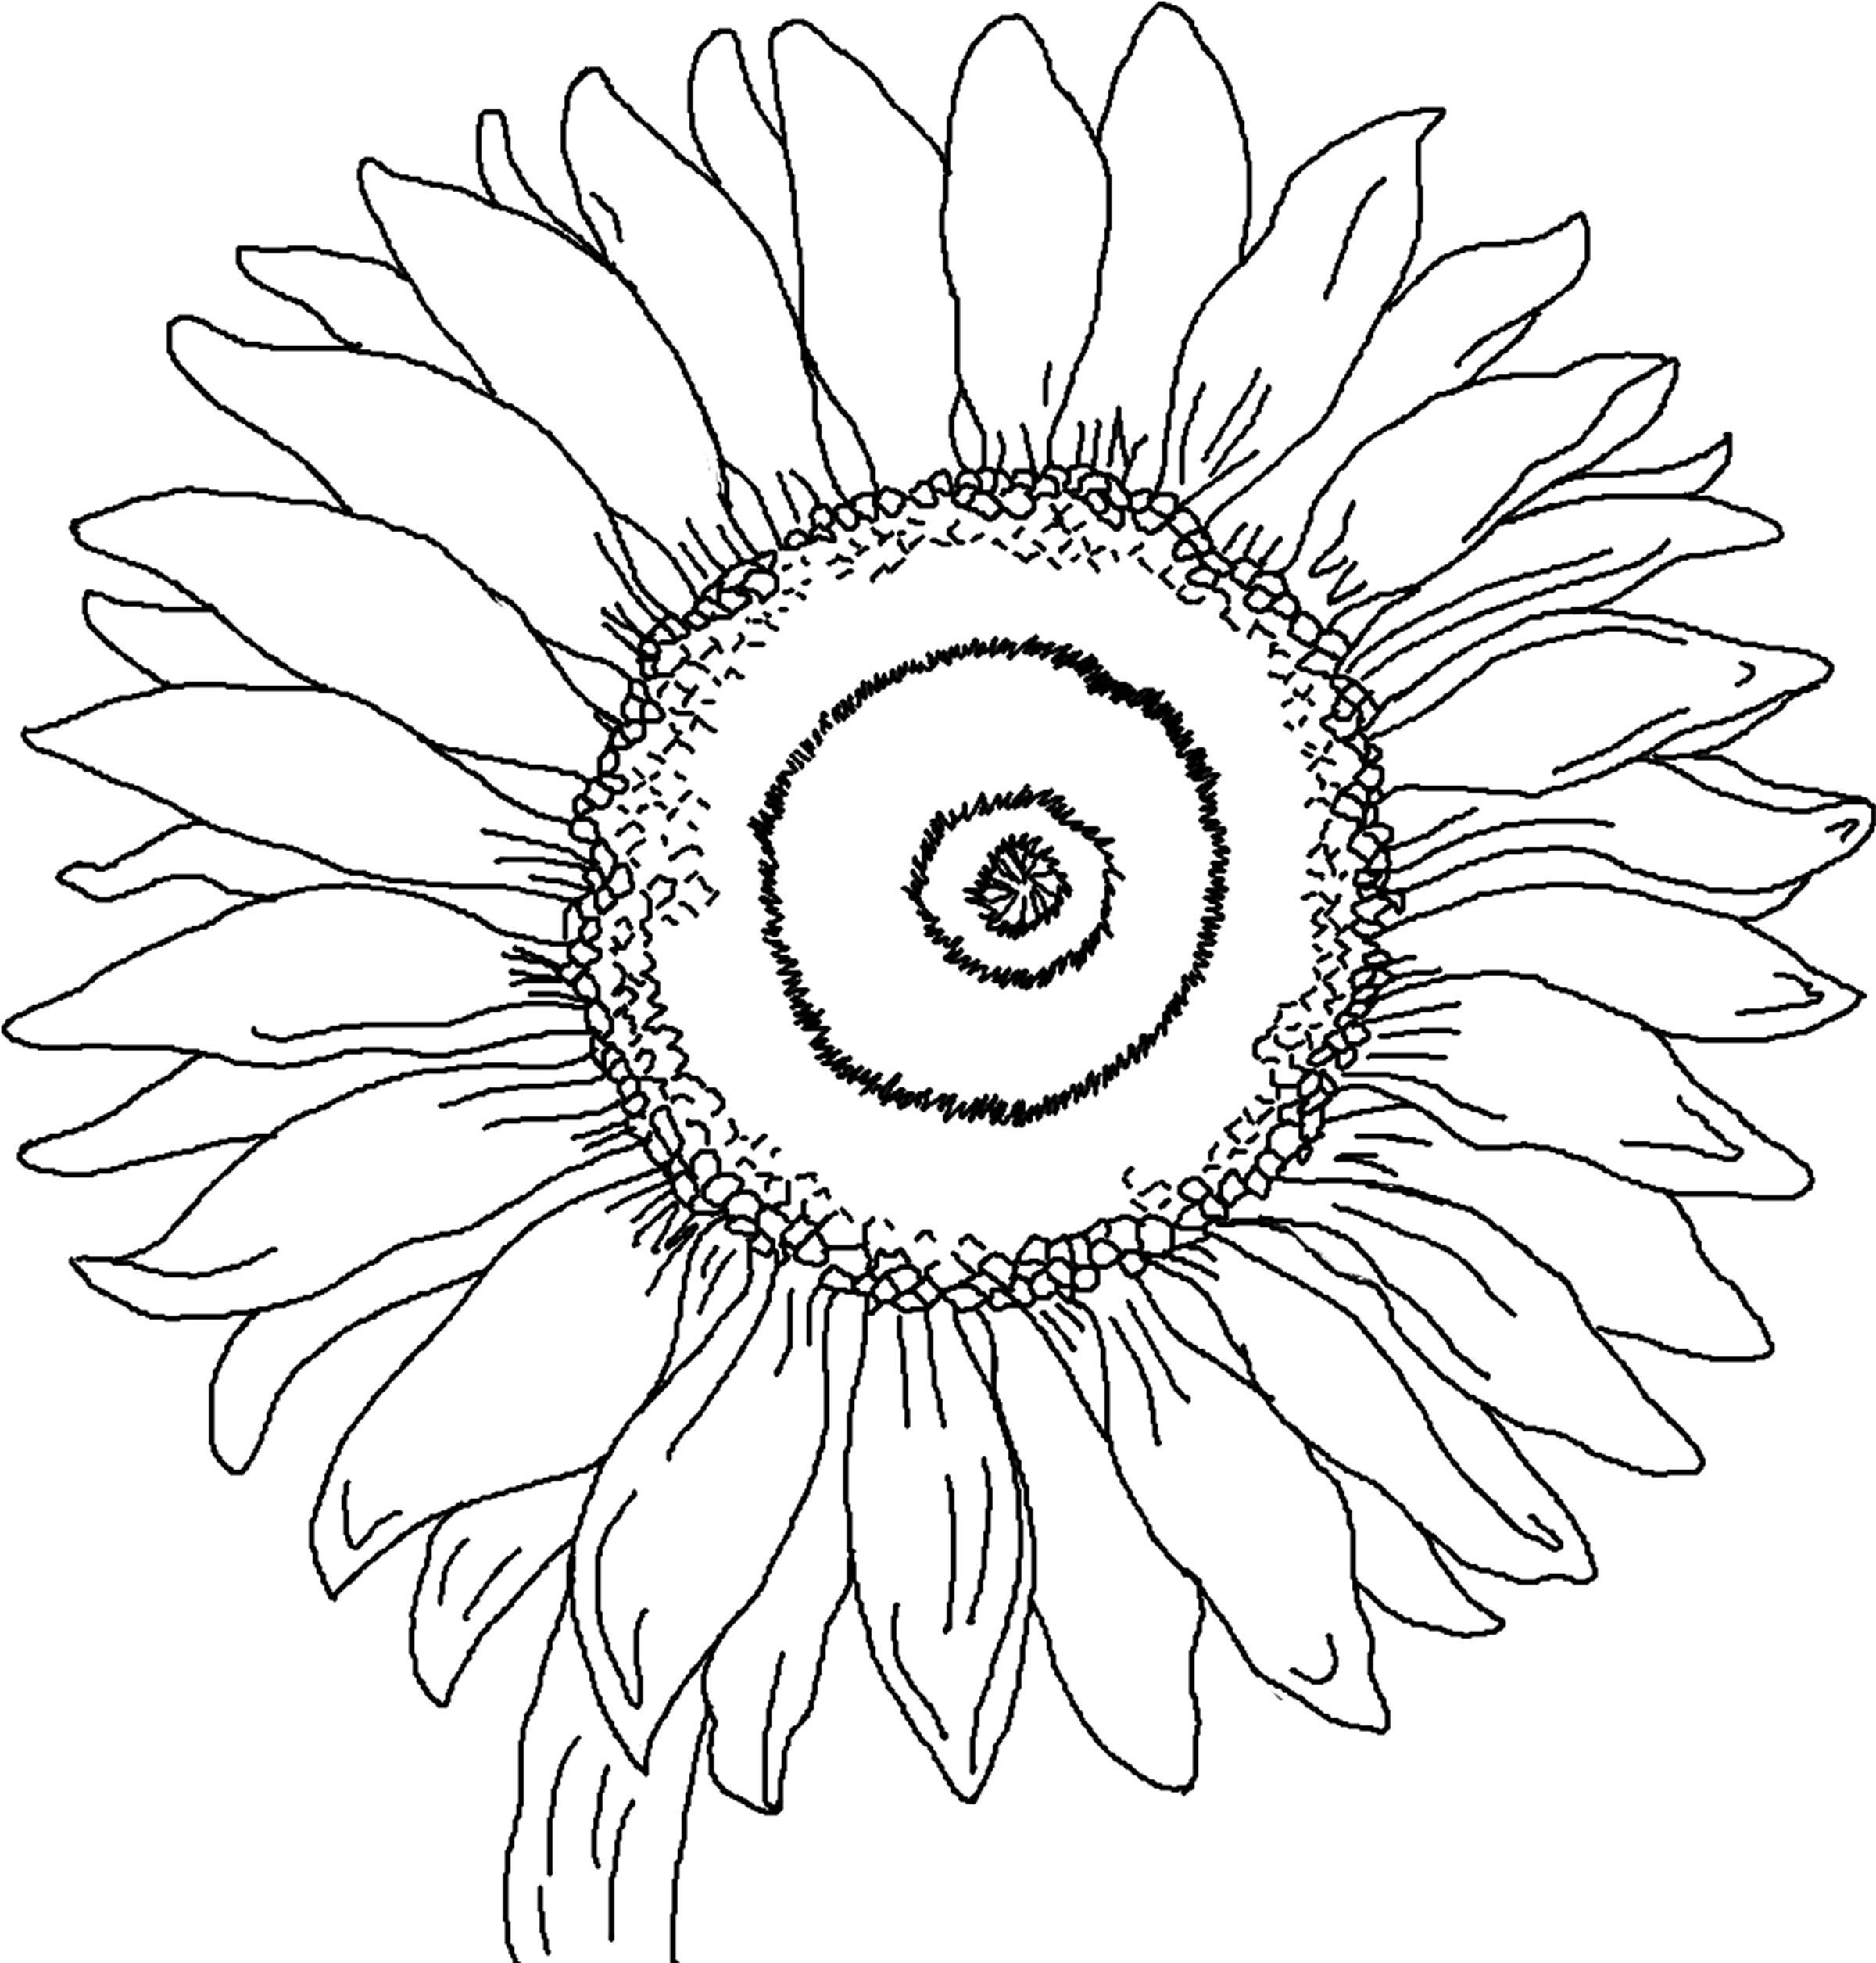 2400x2511 Free Printable Sunflower Coloring Pages For Kids Sunflowers